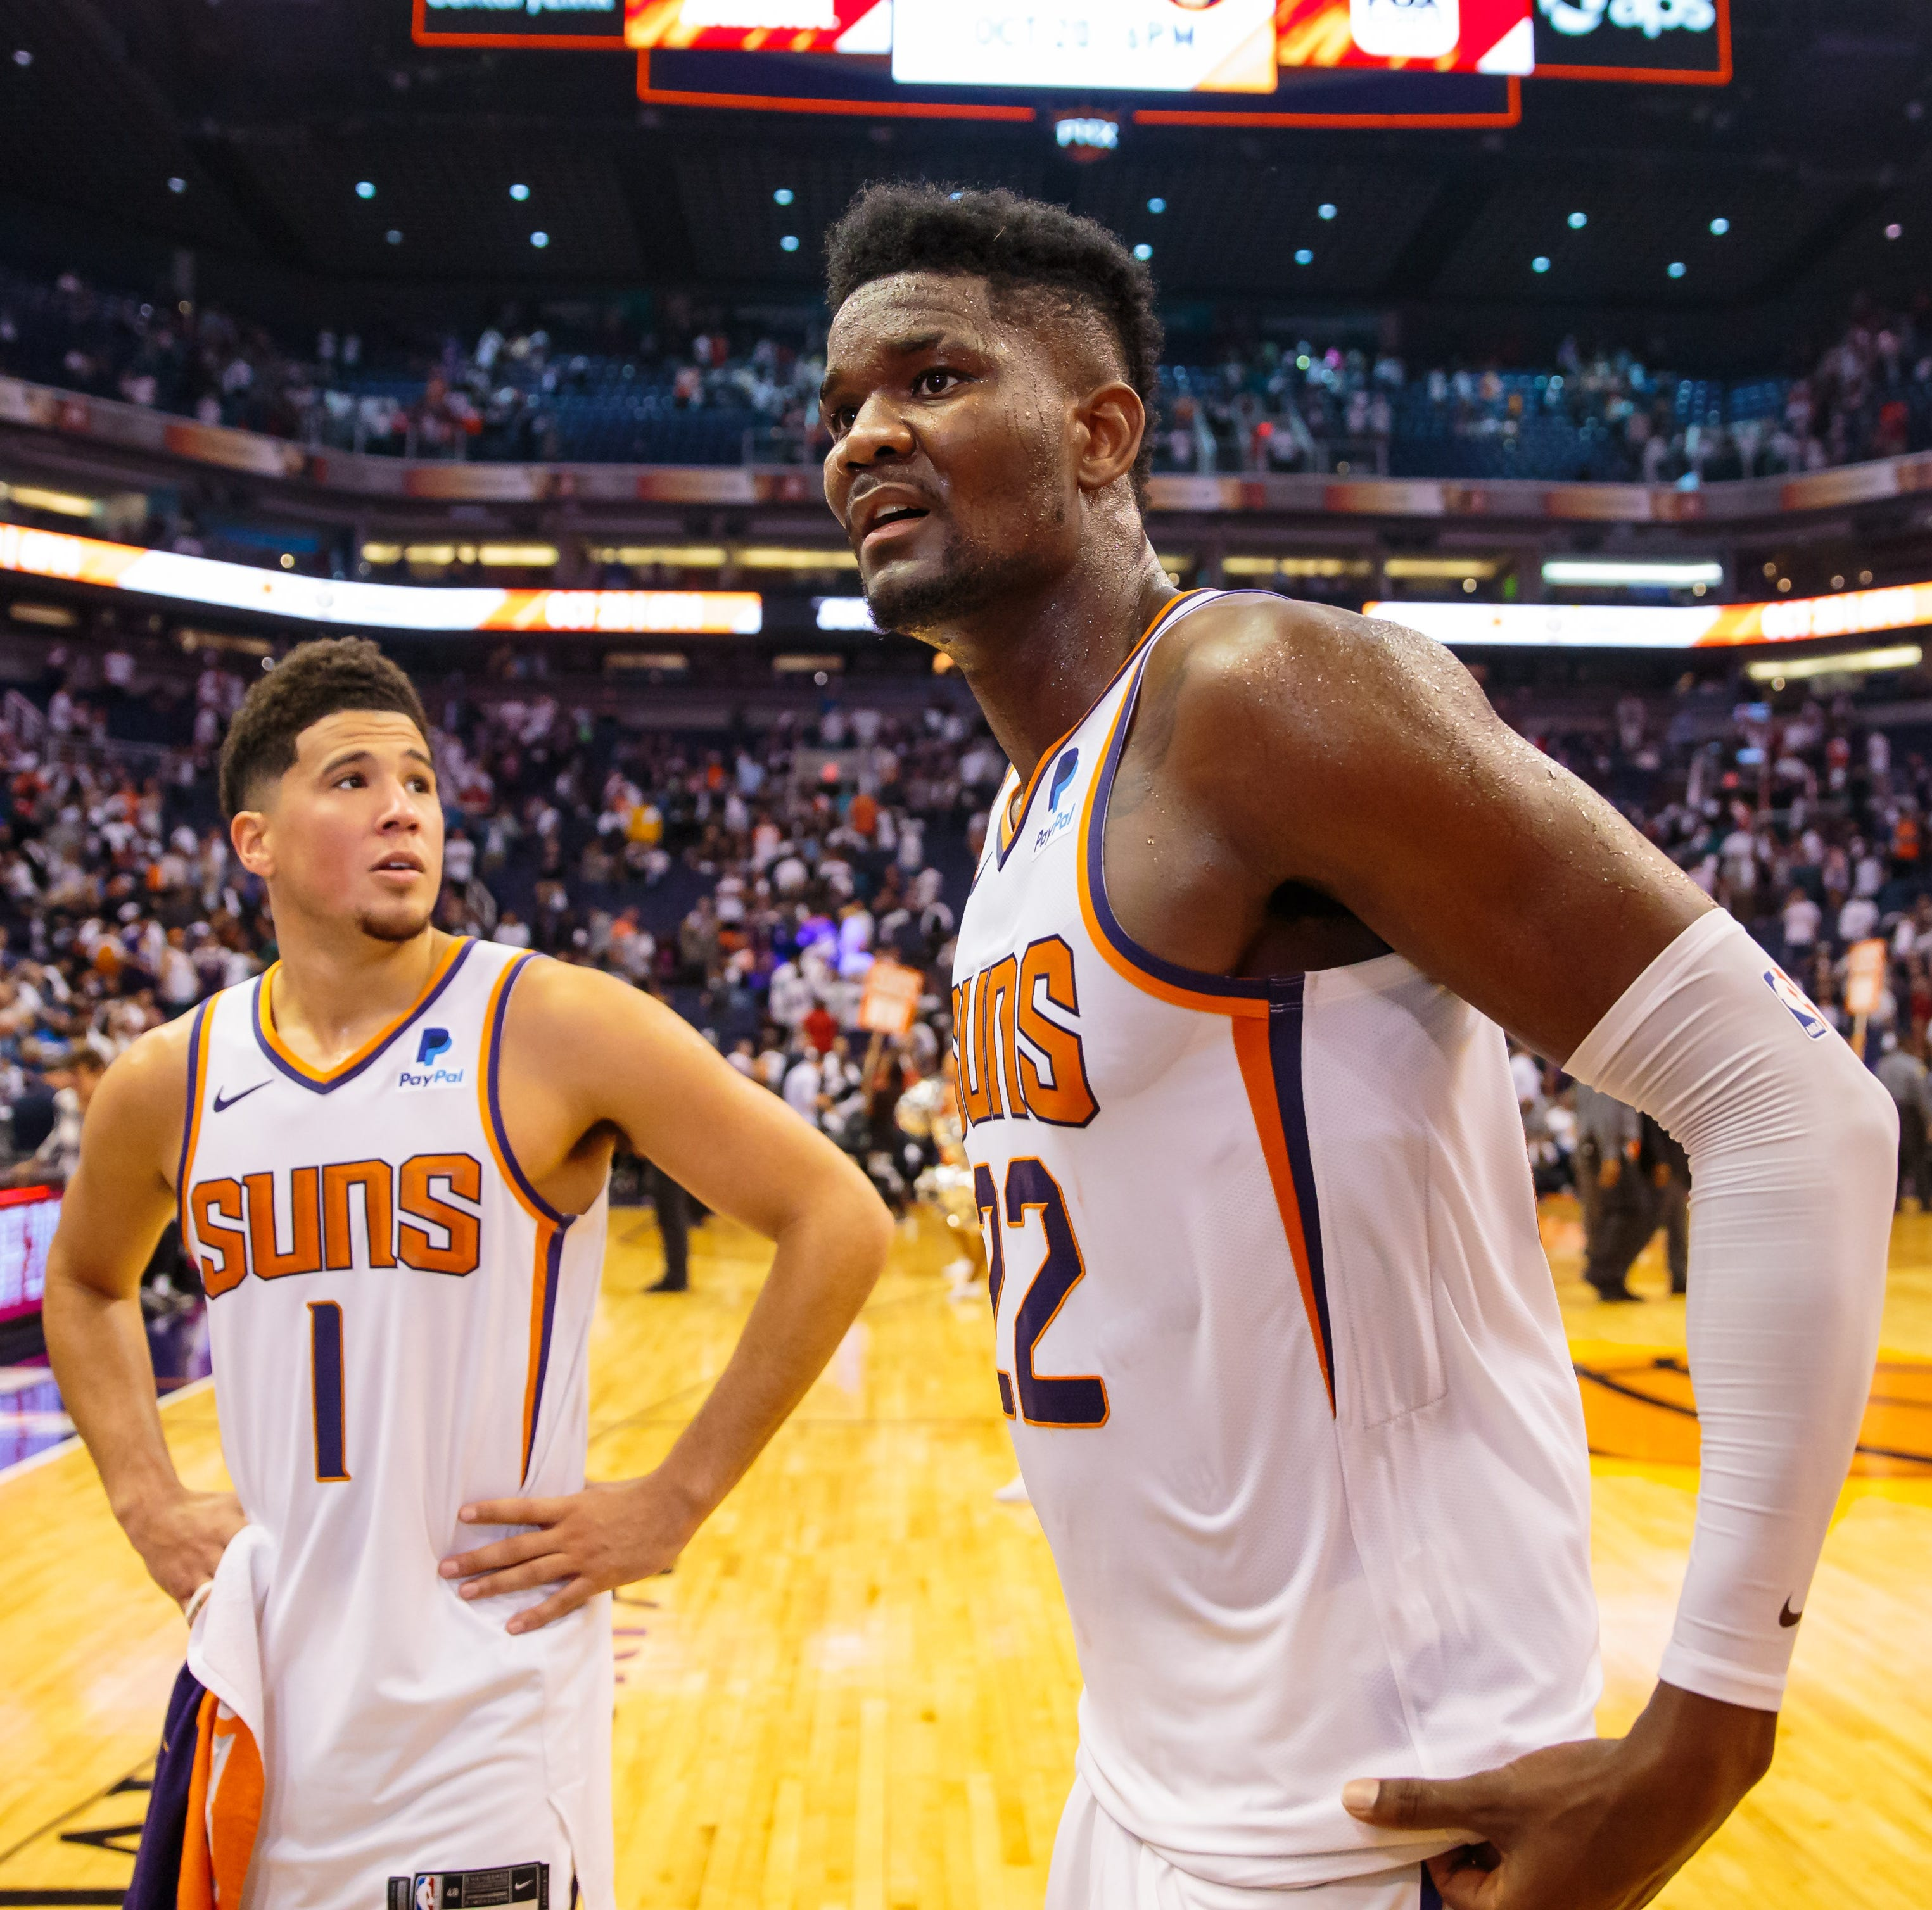 Phoenix Suns' 21-point win over Dallas Mavericks inspires 21 questions